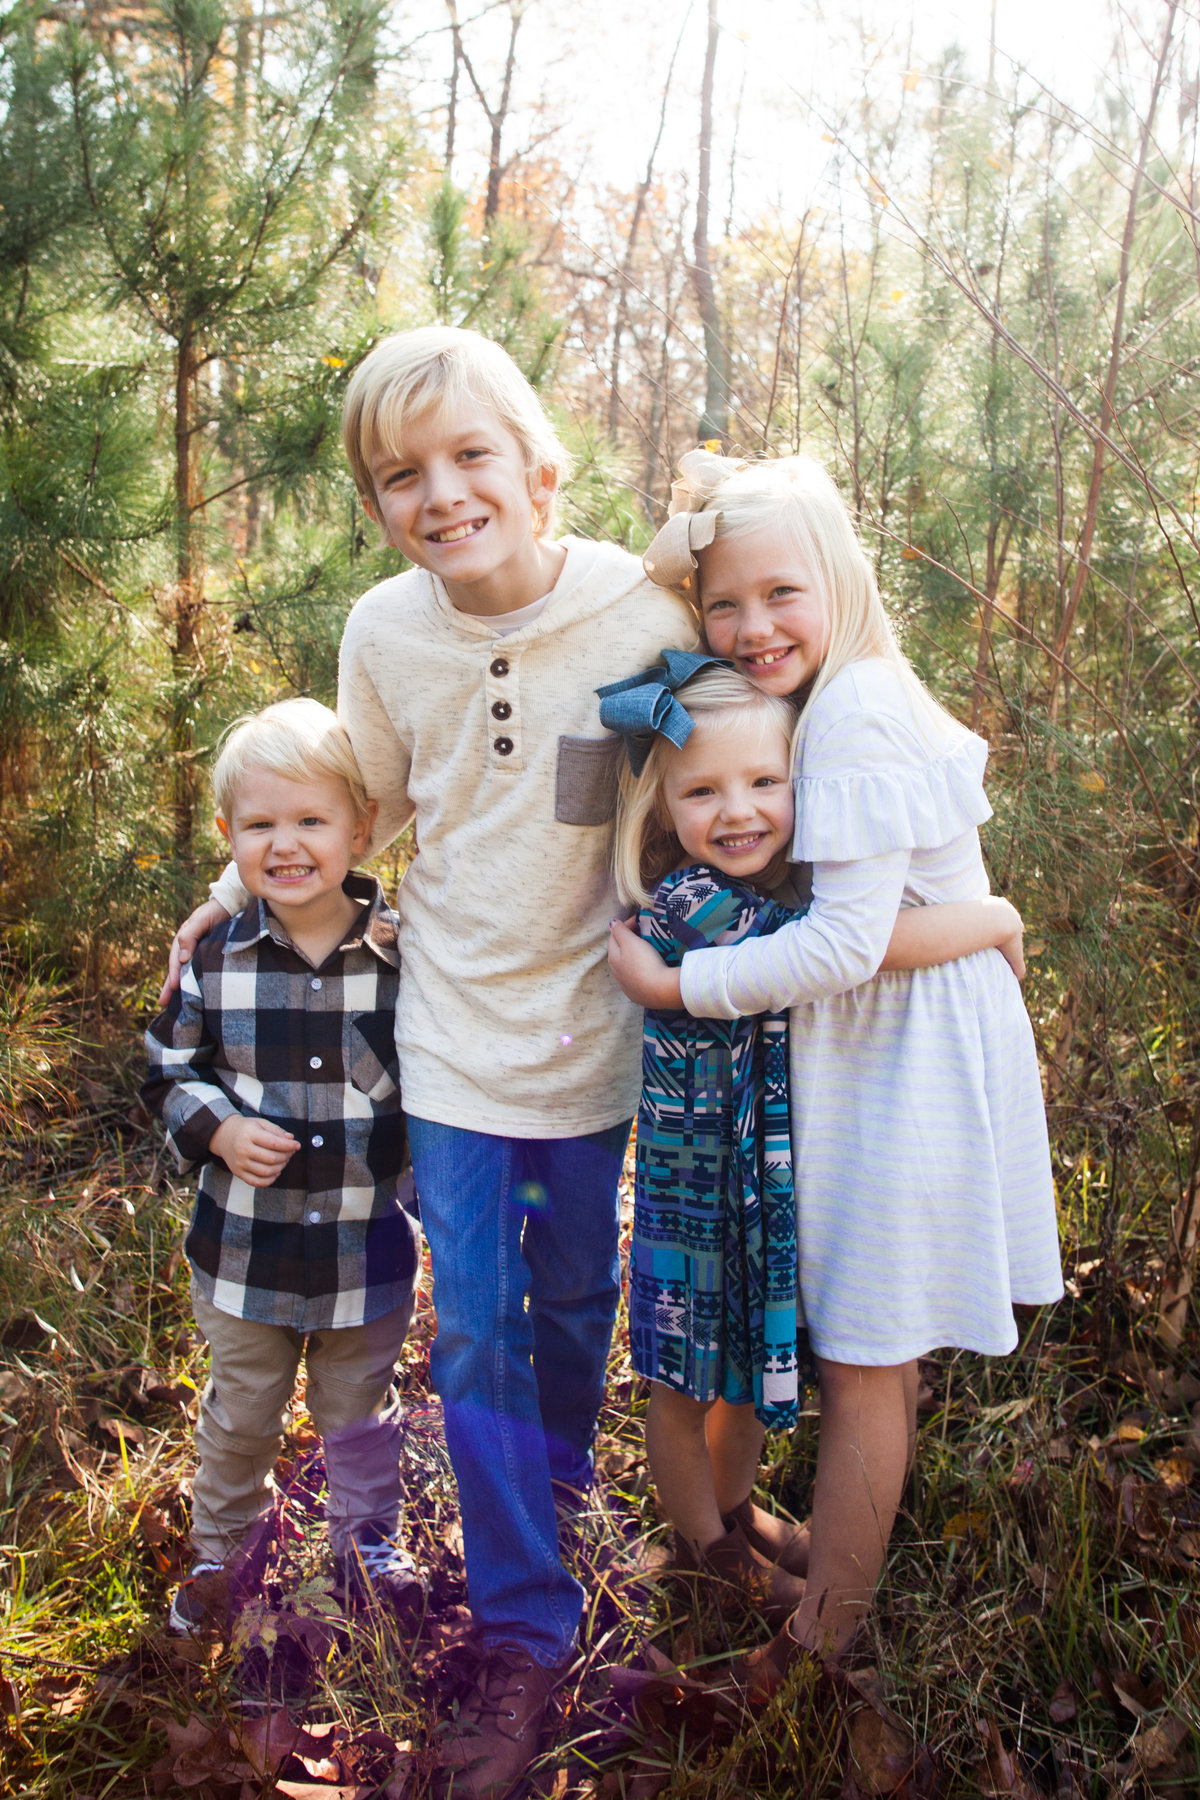 North-Carolina-Family-Photographer-Lindsay-Corrigan-1203